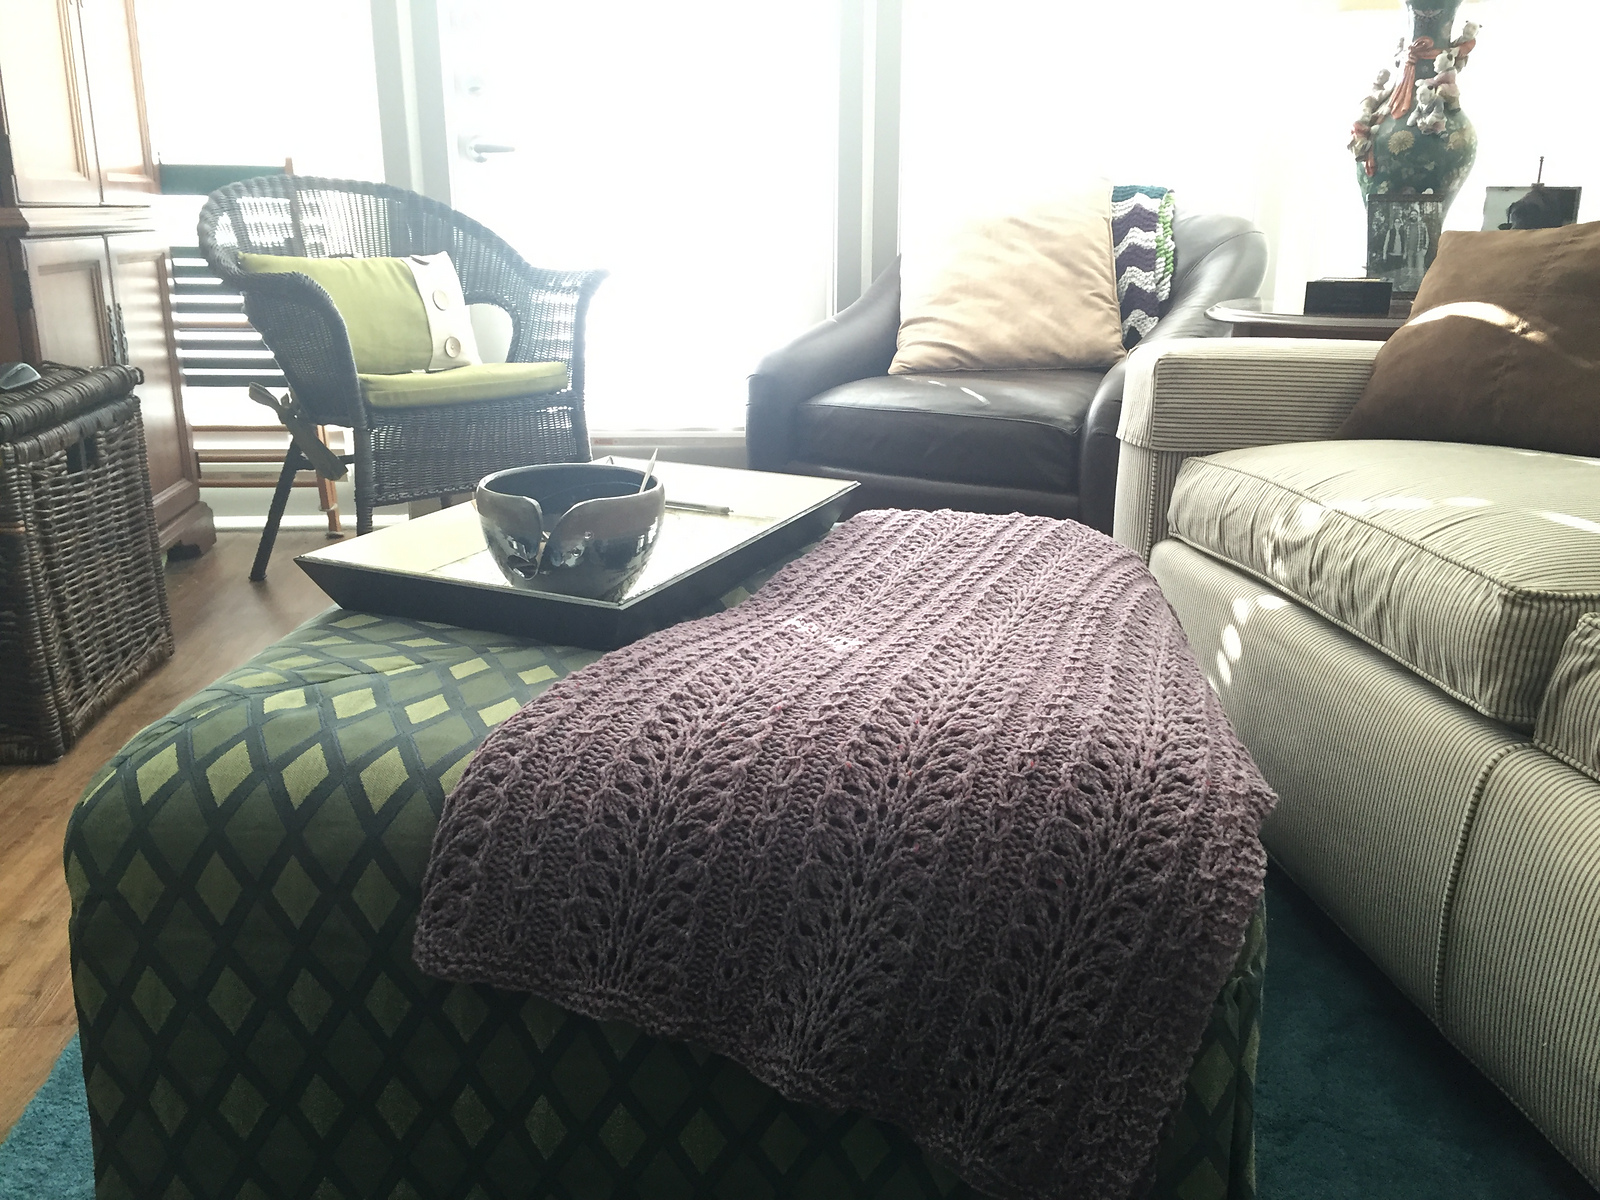 hand knit blanket laid over an ottoman